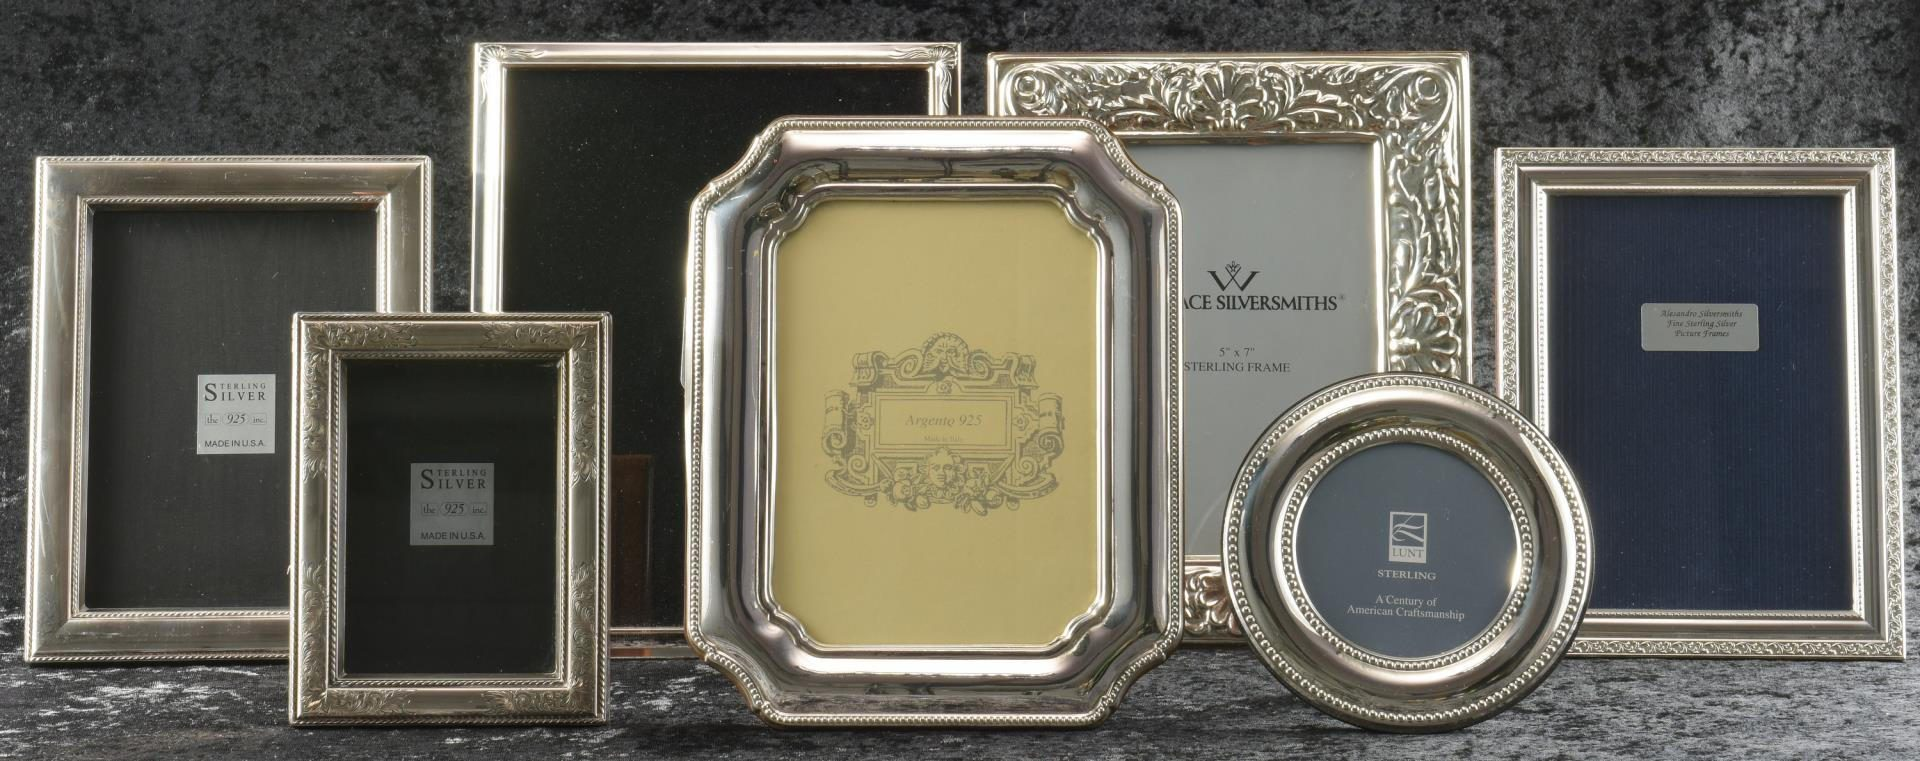 Lot 8: 7 Sterling Frames, including Lunt, Wallace